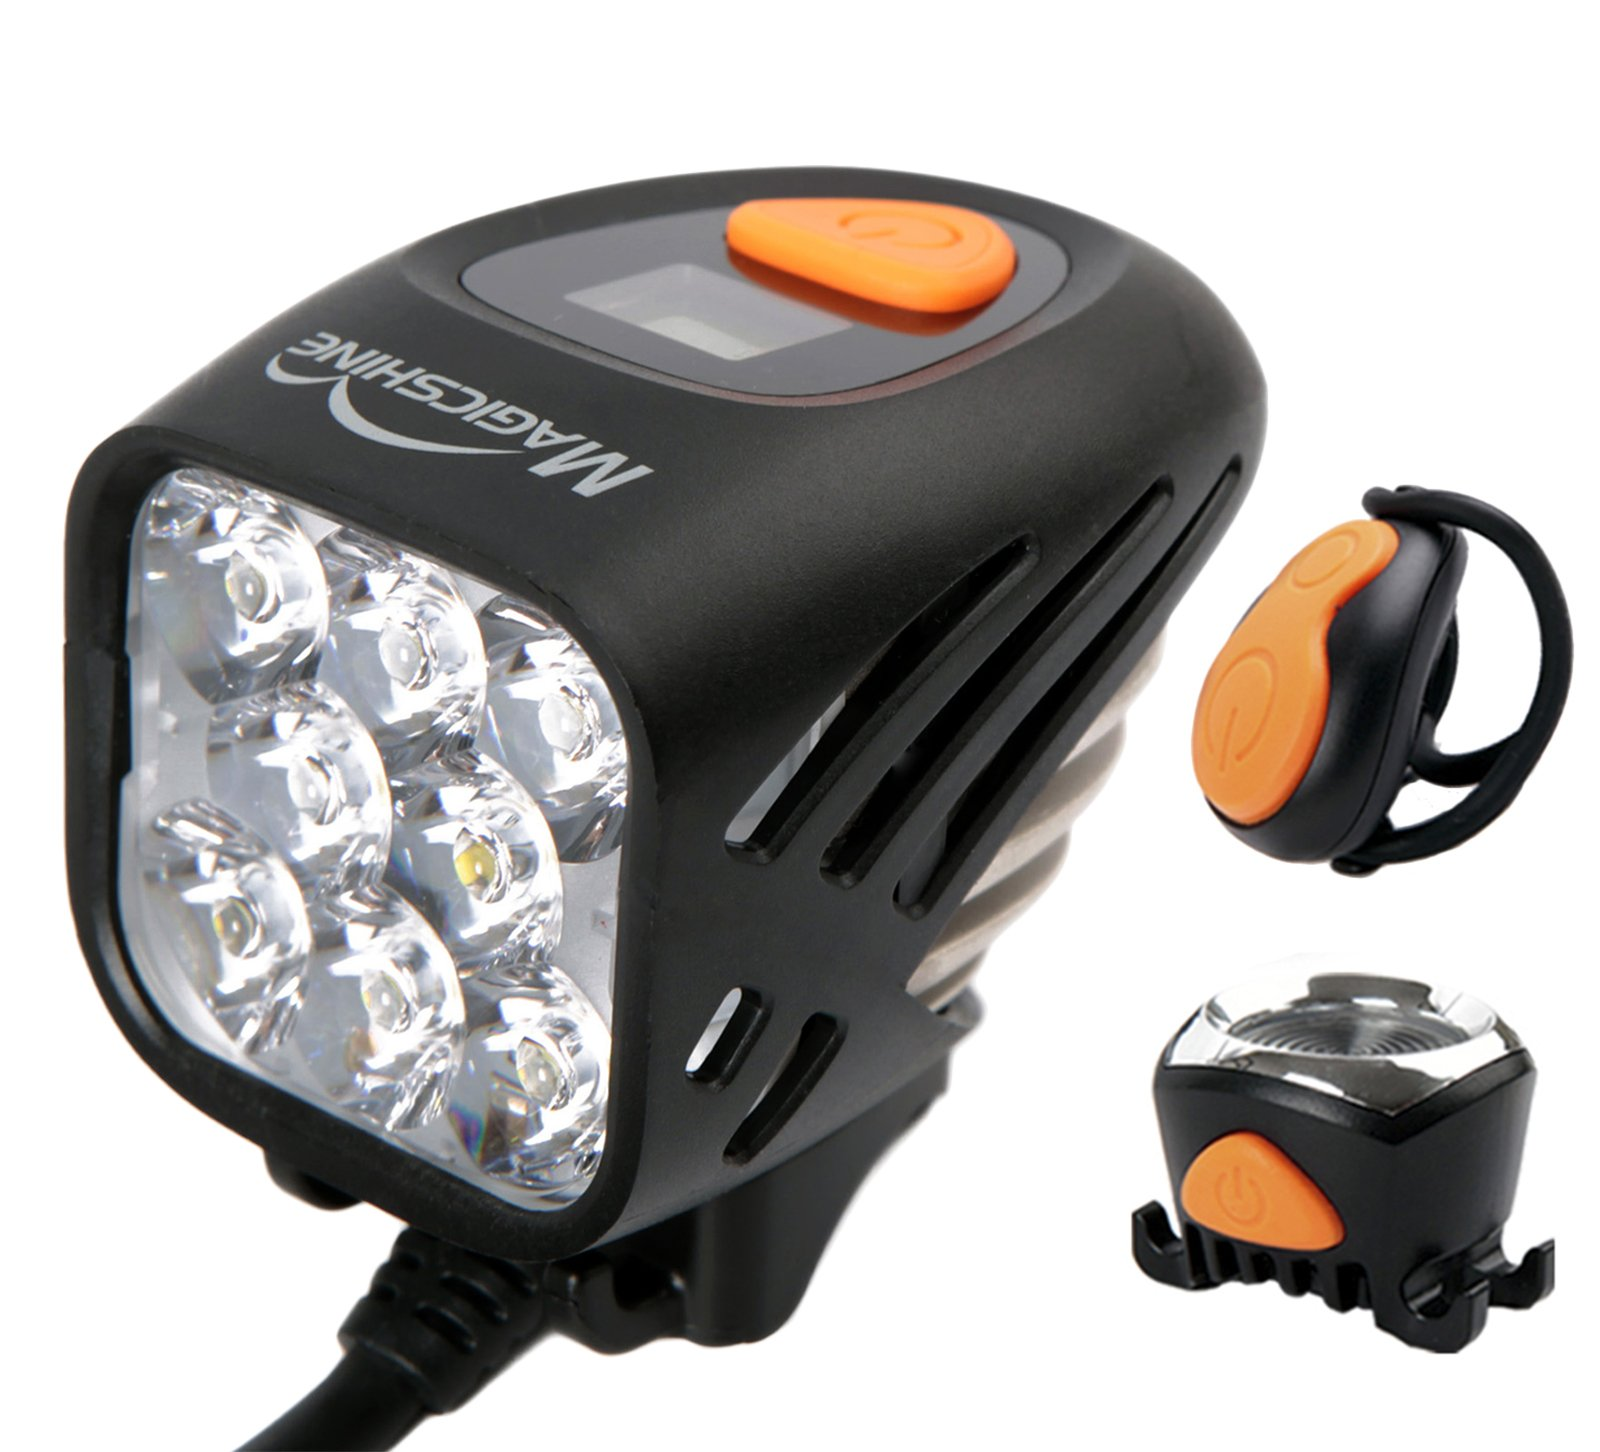 Magicshine MJ-908, High Grade MTB Enduro Bike Light Set, 8000 Lumens of Max output. Wireless Remote Bicycle Lights Front And Rear Combo, LED Bike Tail Light. Fast speed trail riding in the dark.